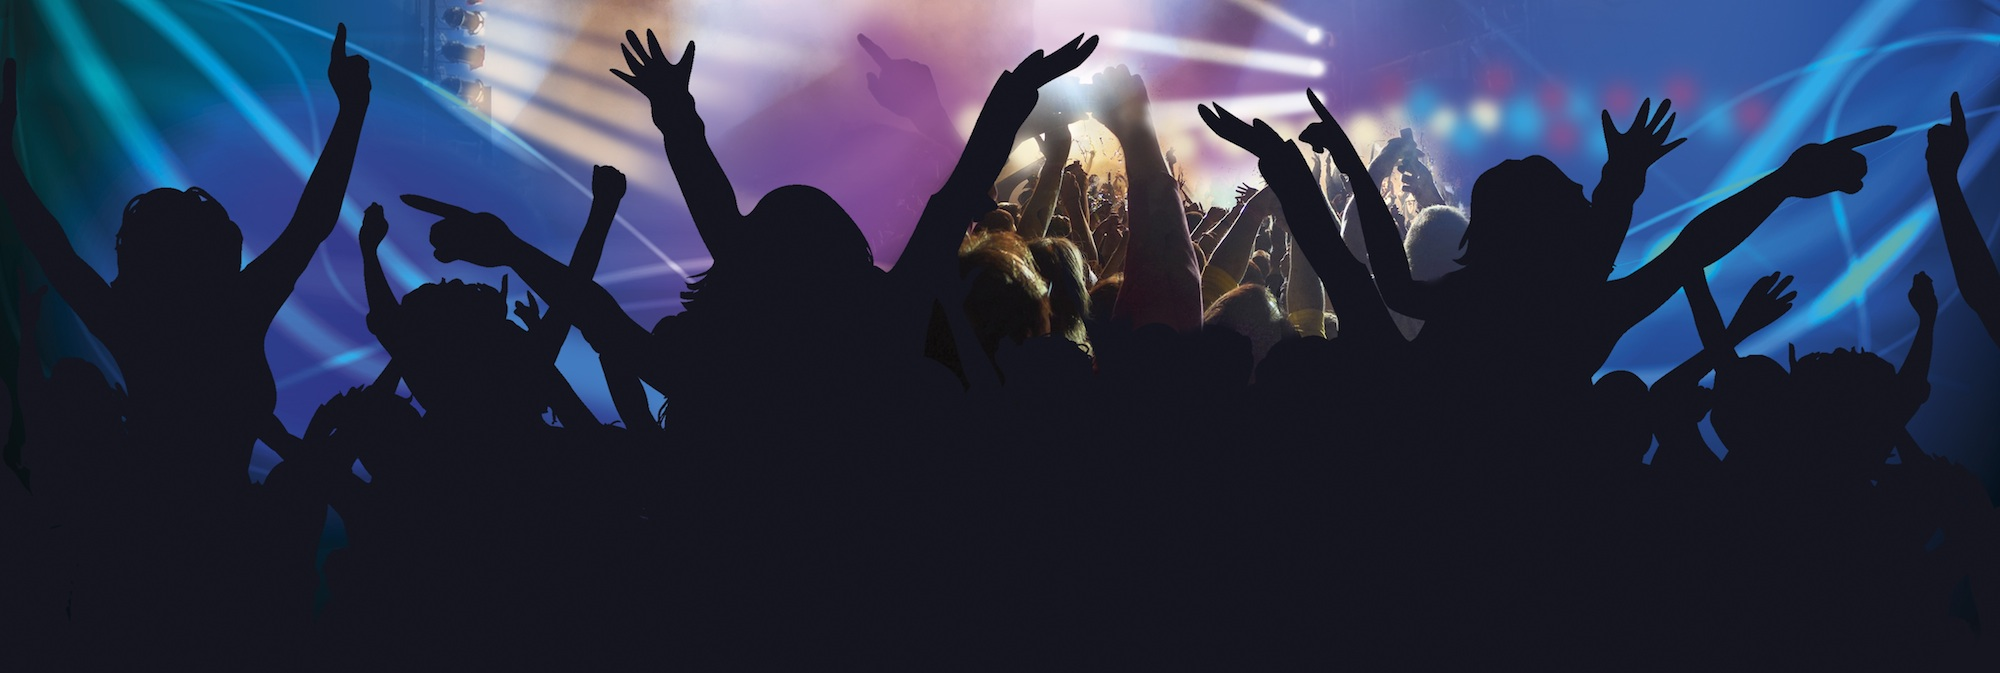 group of fans partying at a concert or event